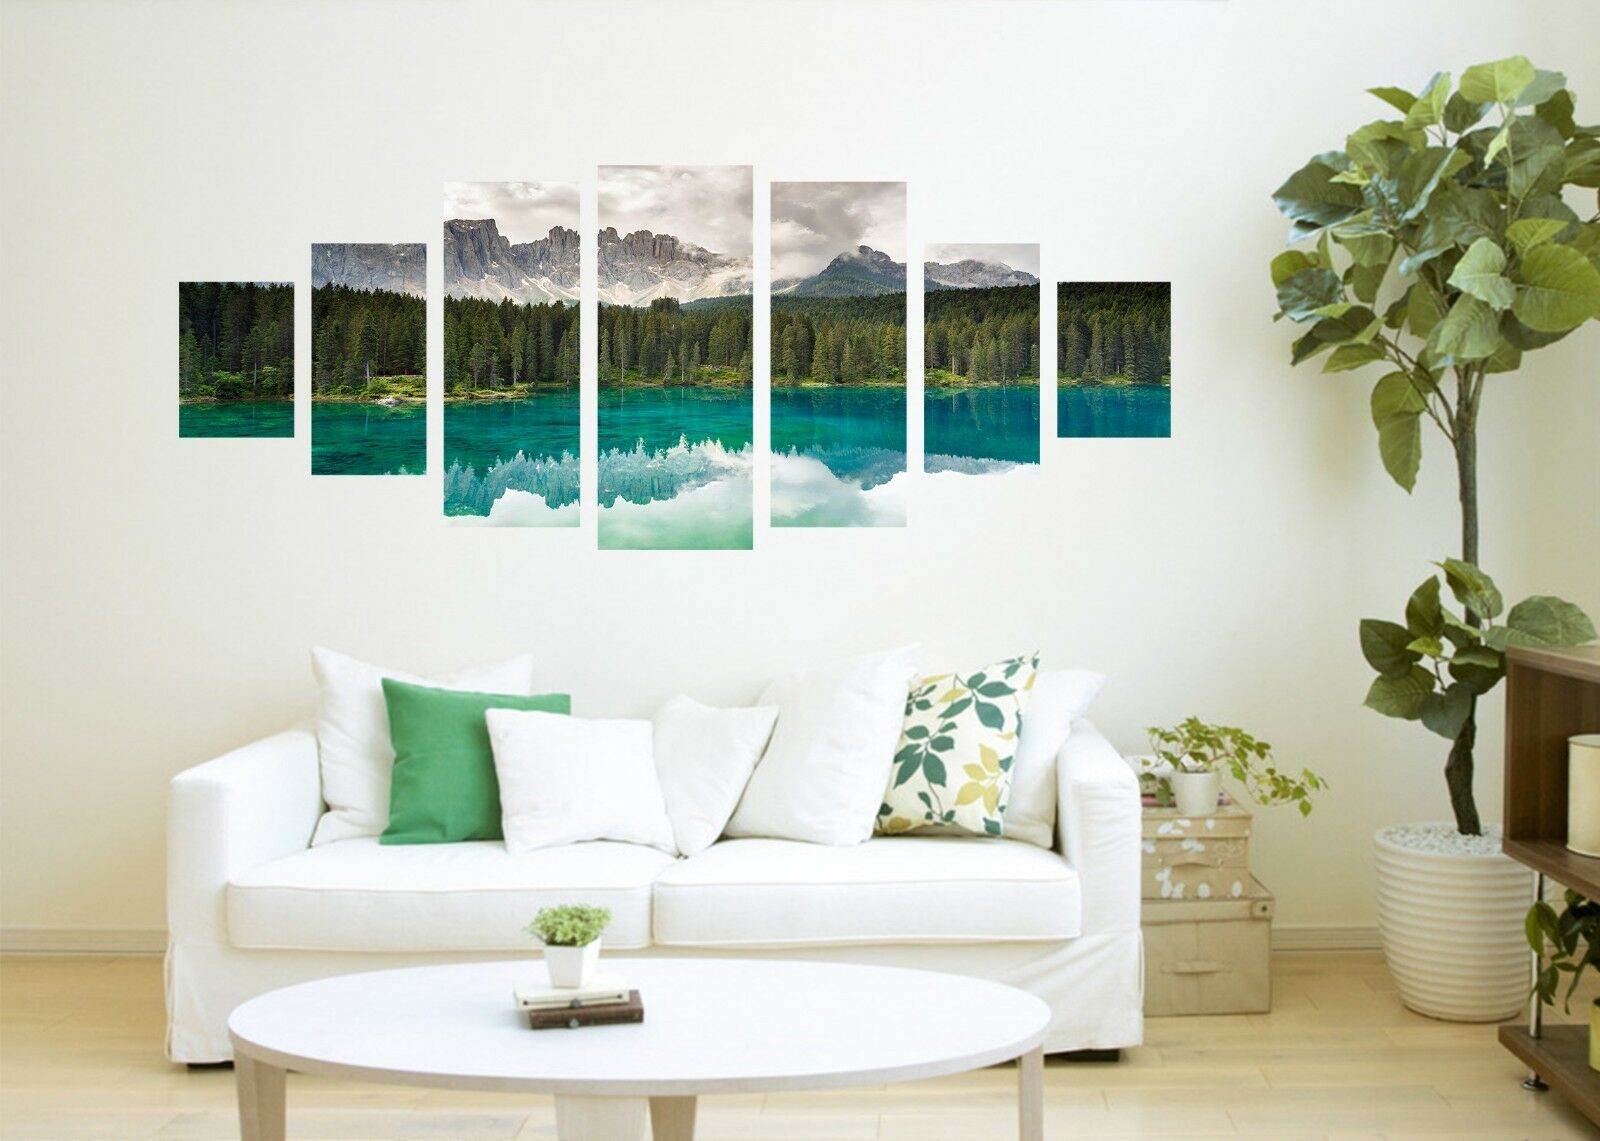 3D River Forest Tree 7 Unframed Print Wall Paper Decal Wall Deco Indoor AJ Jenny